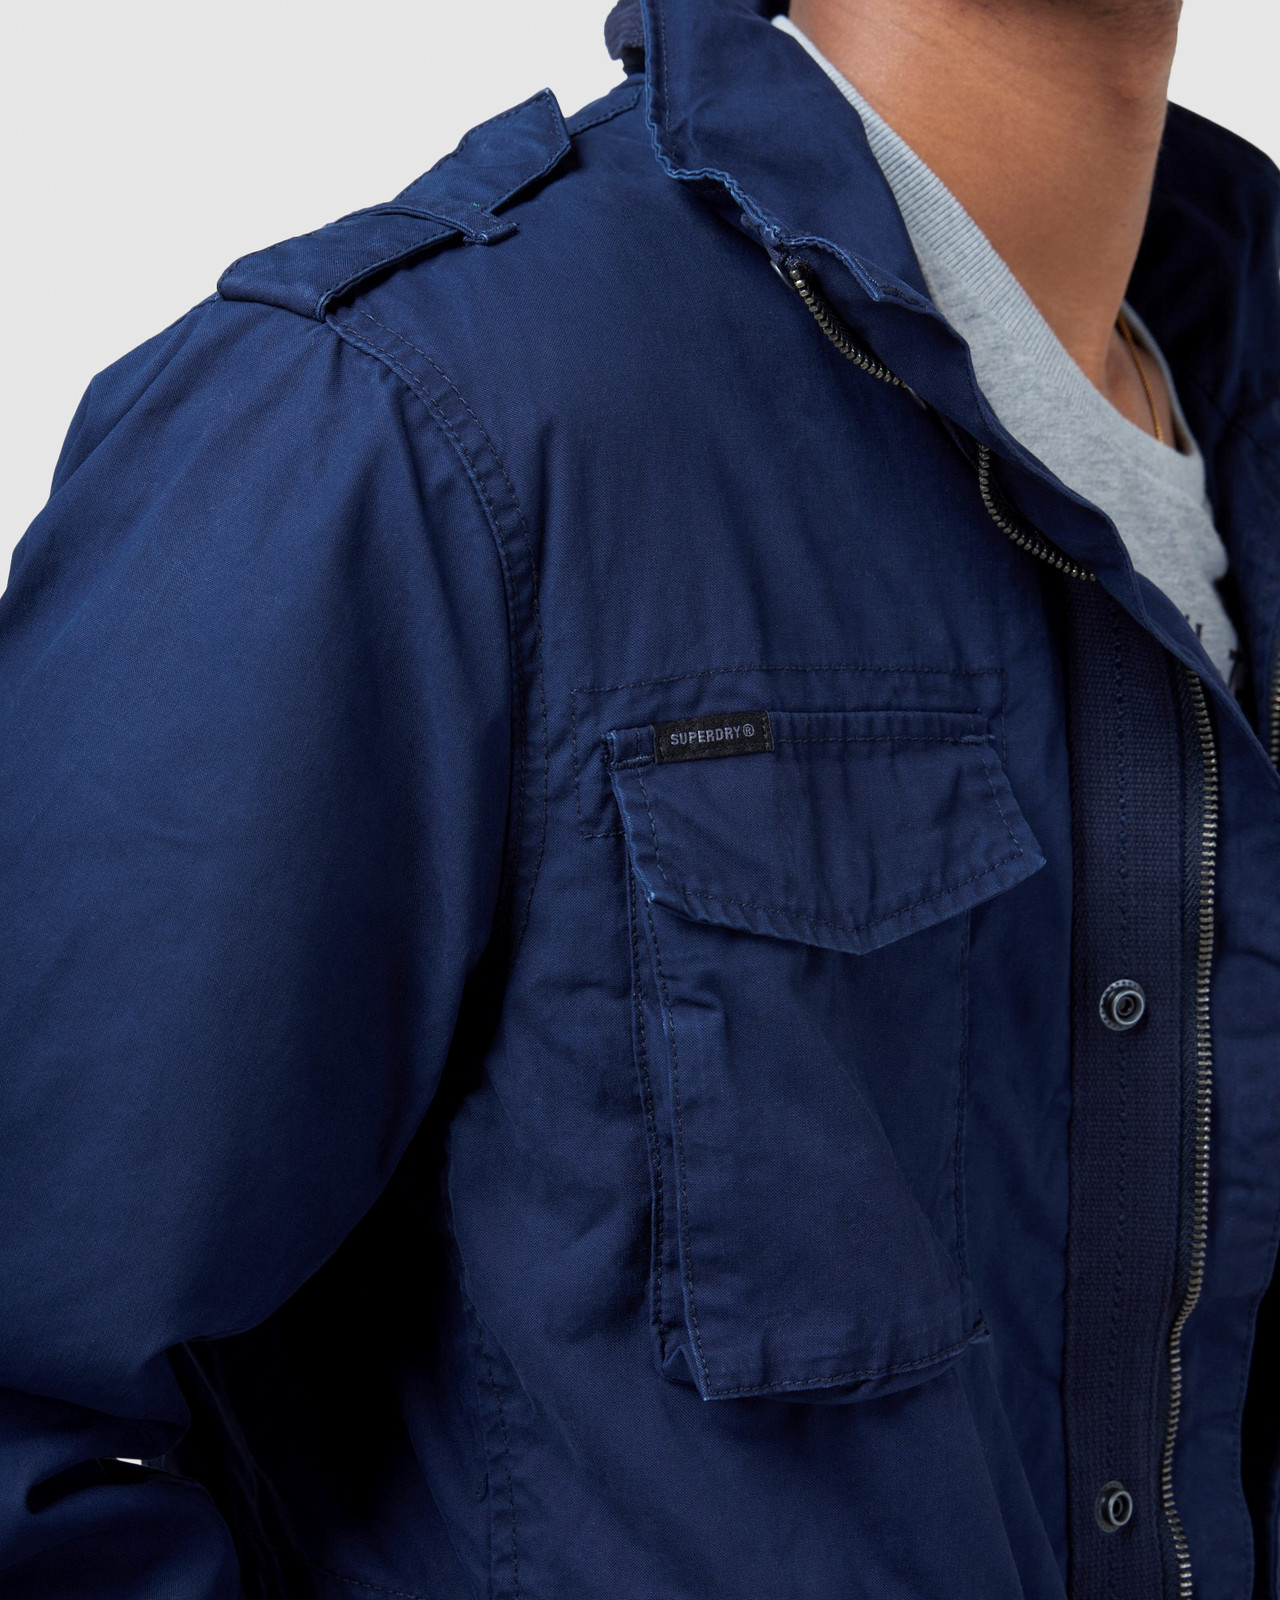 Superdry Mens CLASSIC RECRUIT JACKET Navy Military Jackets 8